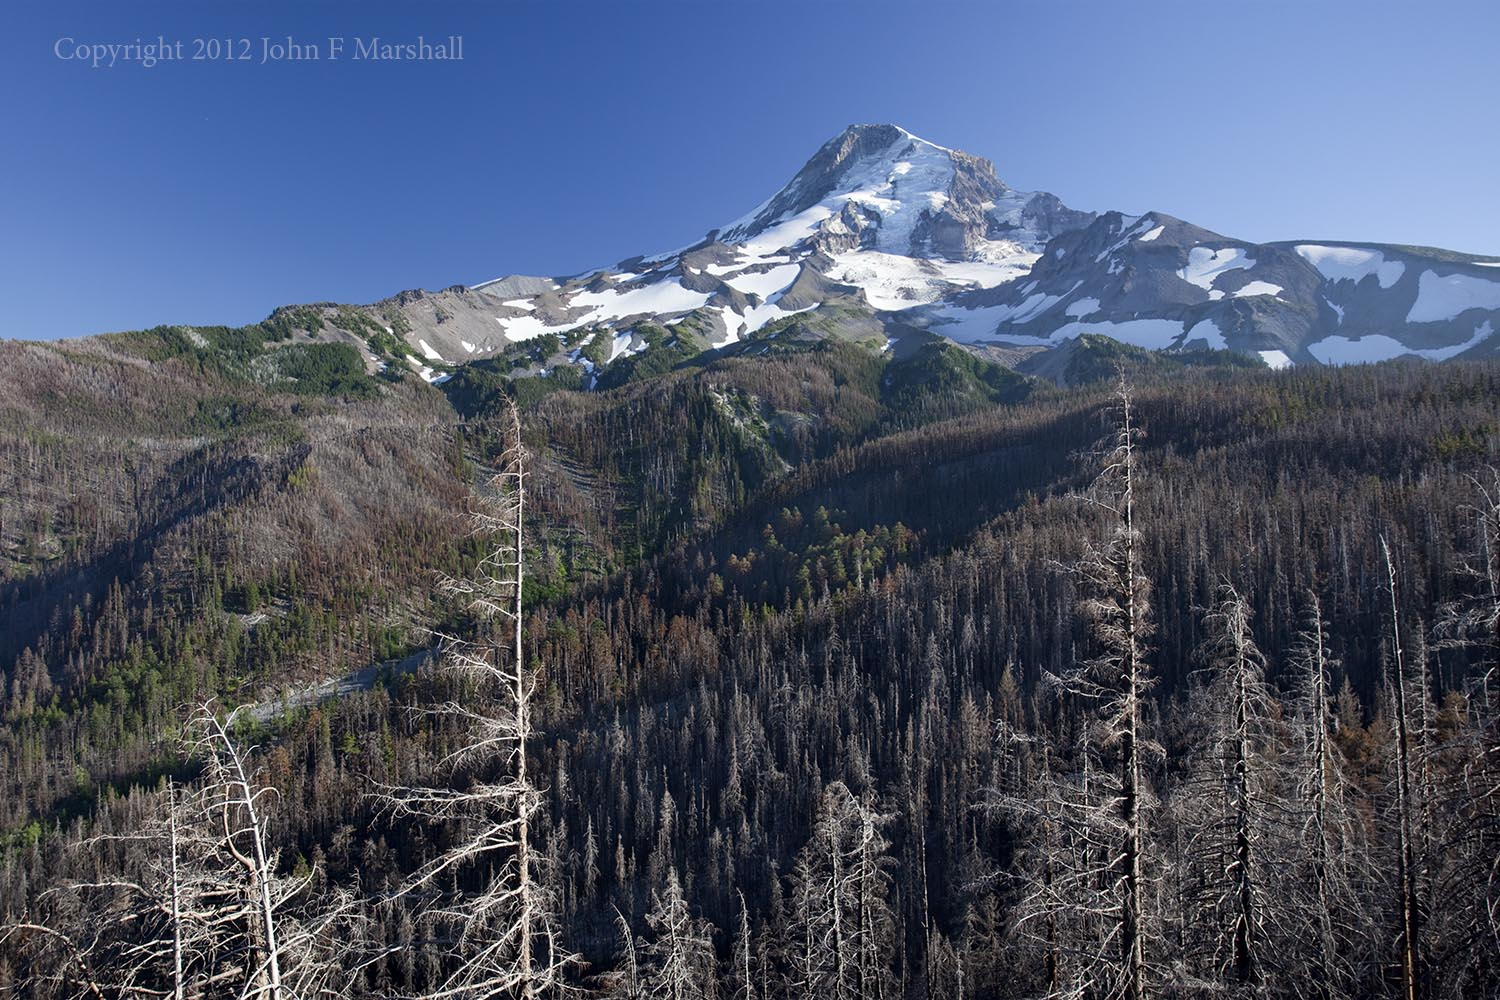 At about three miles there is a great viewpoint into the Coe Branch of the East Fork of Hood River.  My 2012 photo shows needles clinging to the fire-killed trees. August 15, 2012